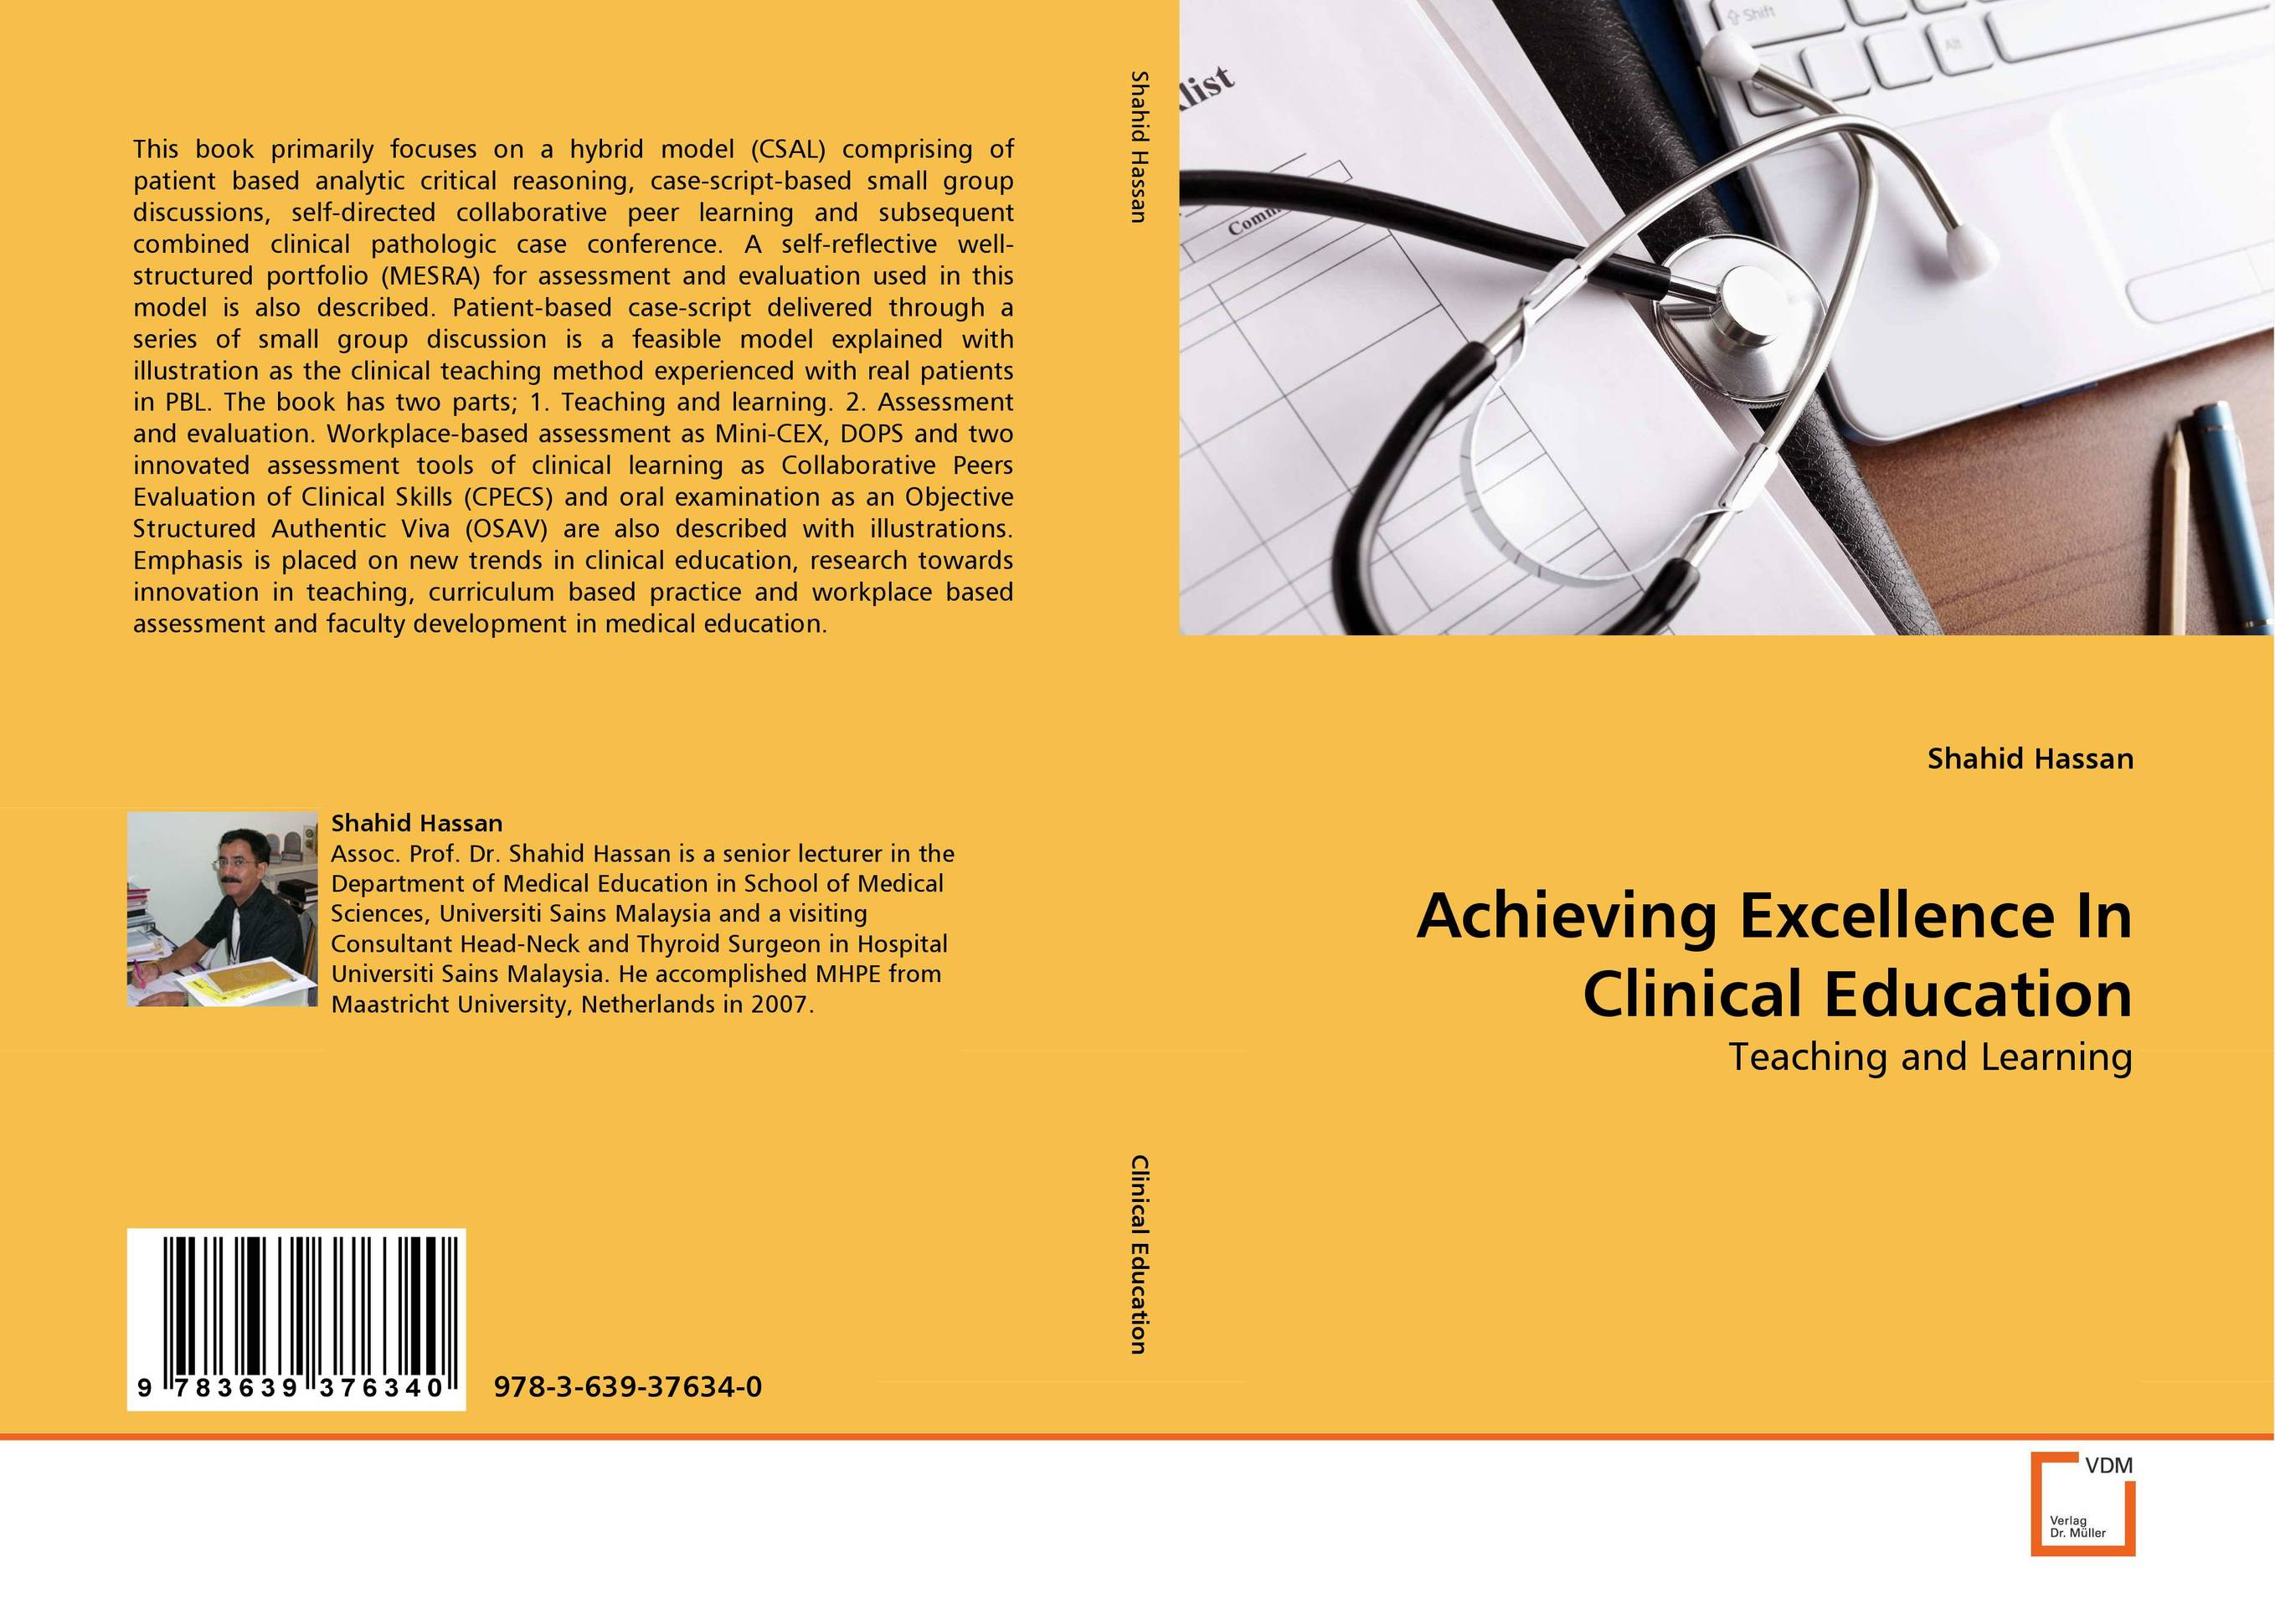 Achieving Excellence In Clinical Education ahmad tijani surajudeen discussion method versus students'competence in collaborative learning